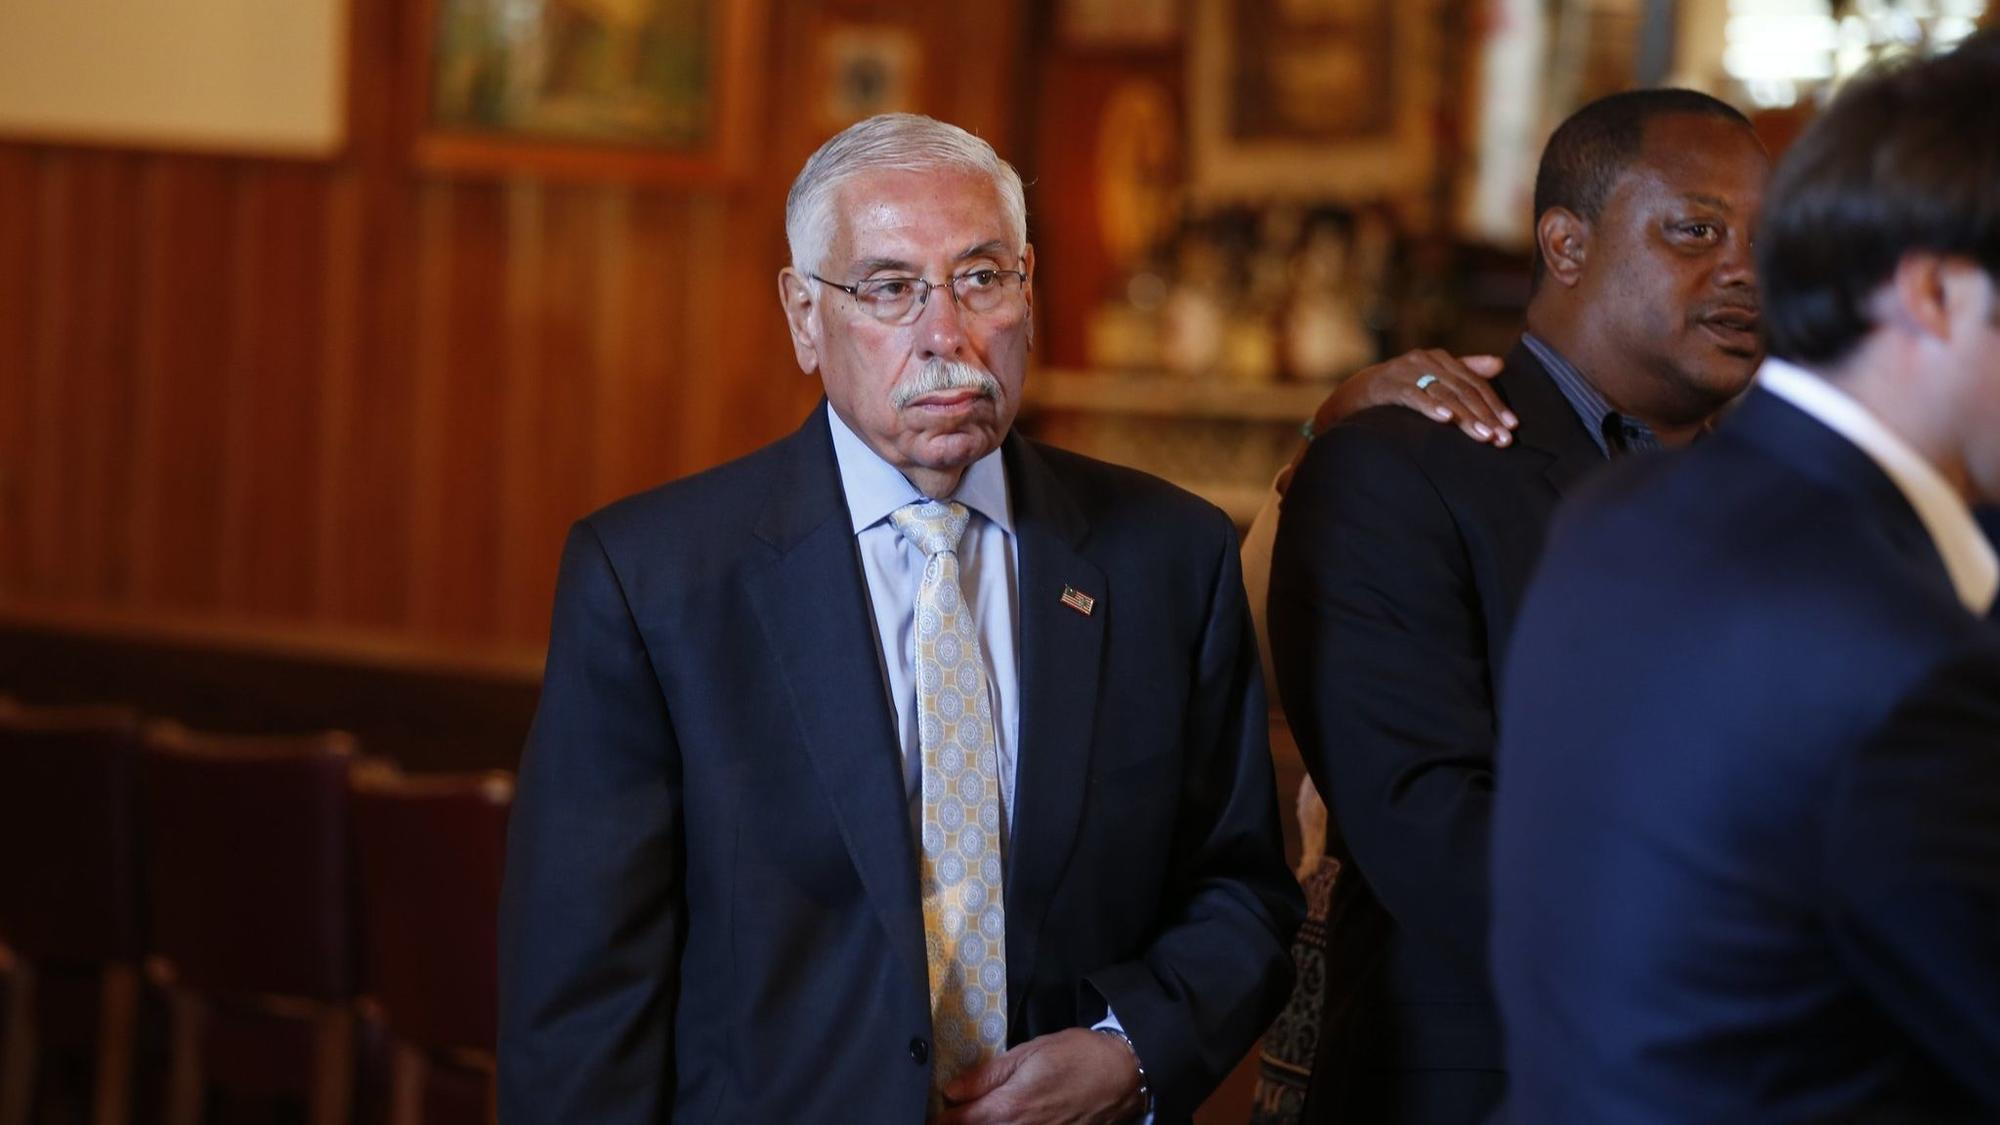 Assessor Berrios loses attempt to overturn Cook County's limits on campaign donations